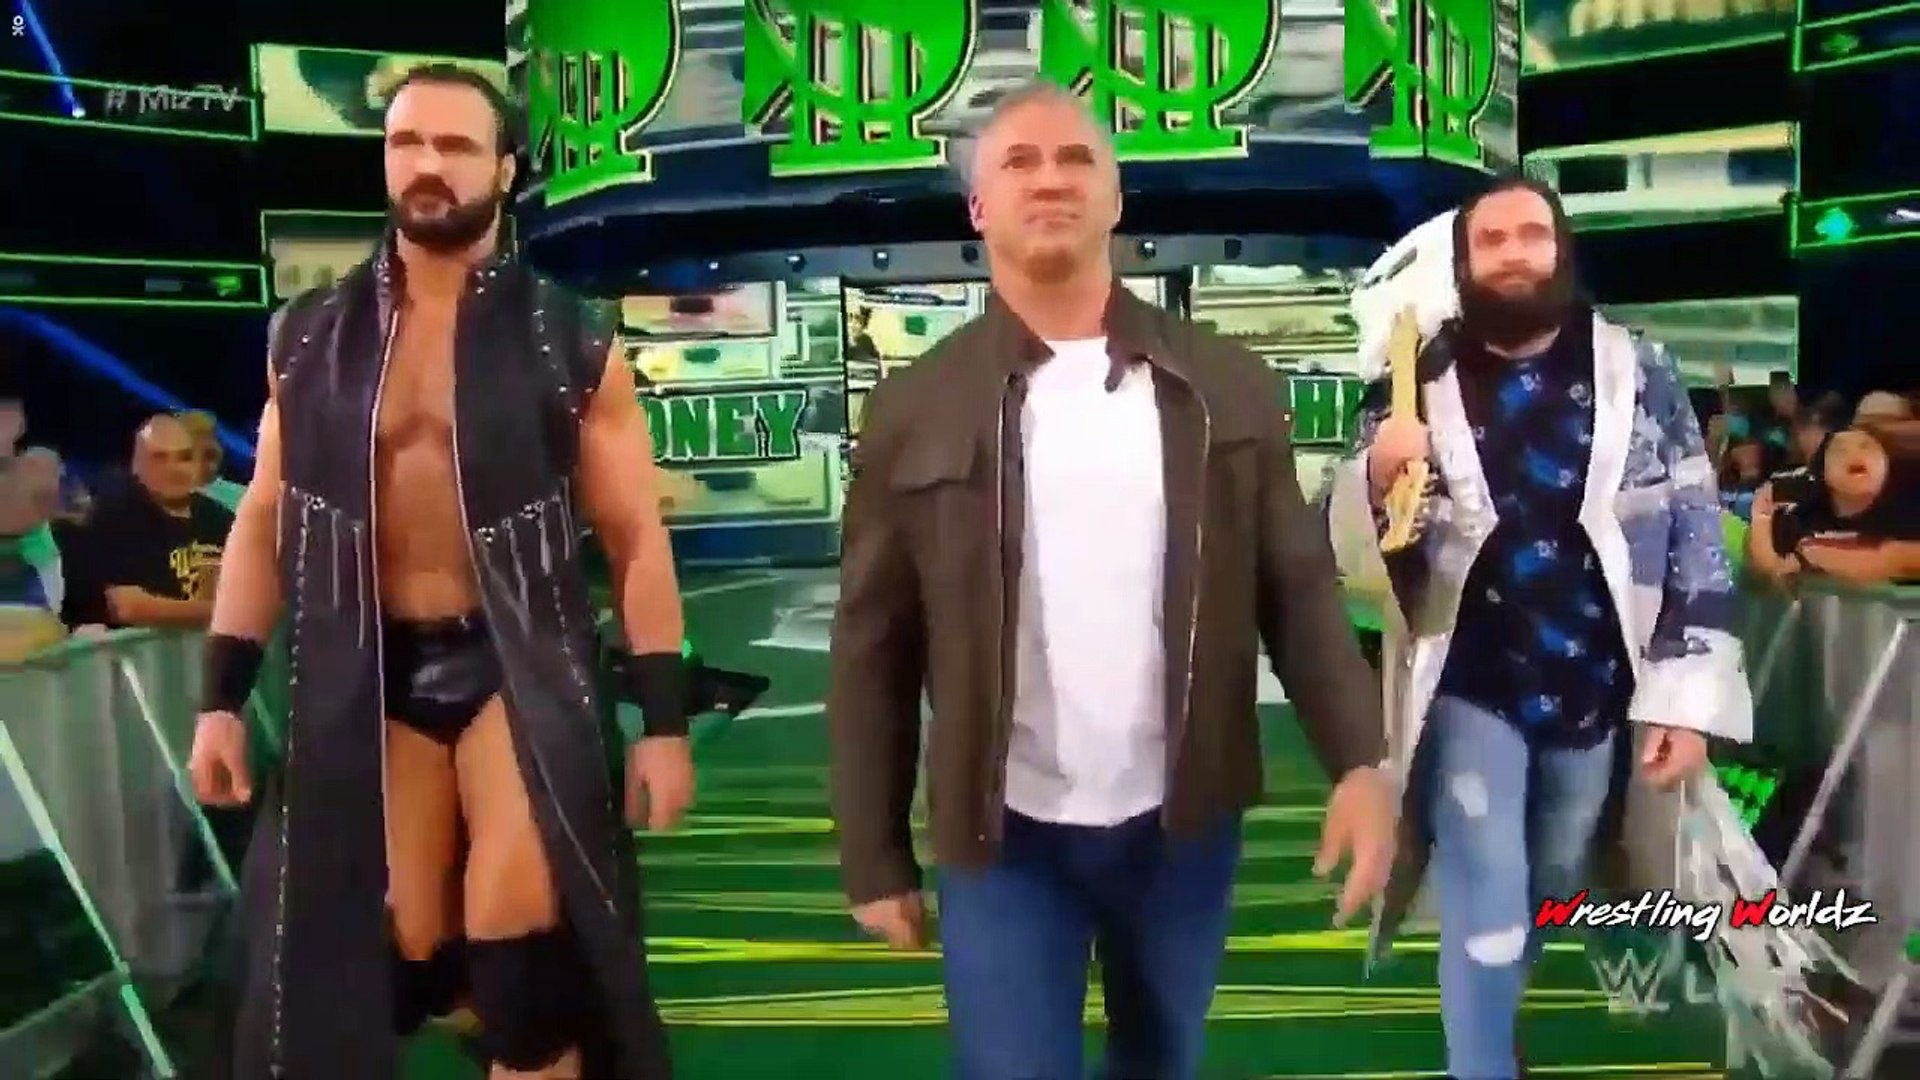 WWE+Smackdown+Highlights+11th+June+2019+HD+_++WWE+Smackdown+Live+Highlight+06+⁄11+⁄19+HD1